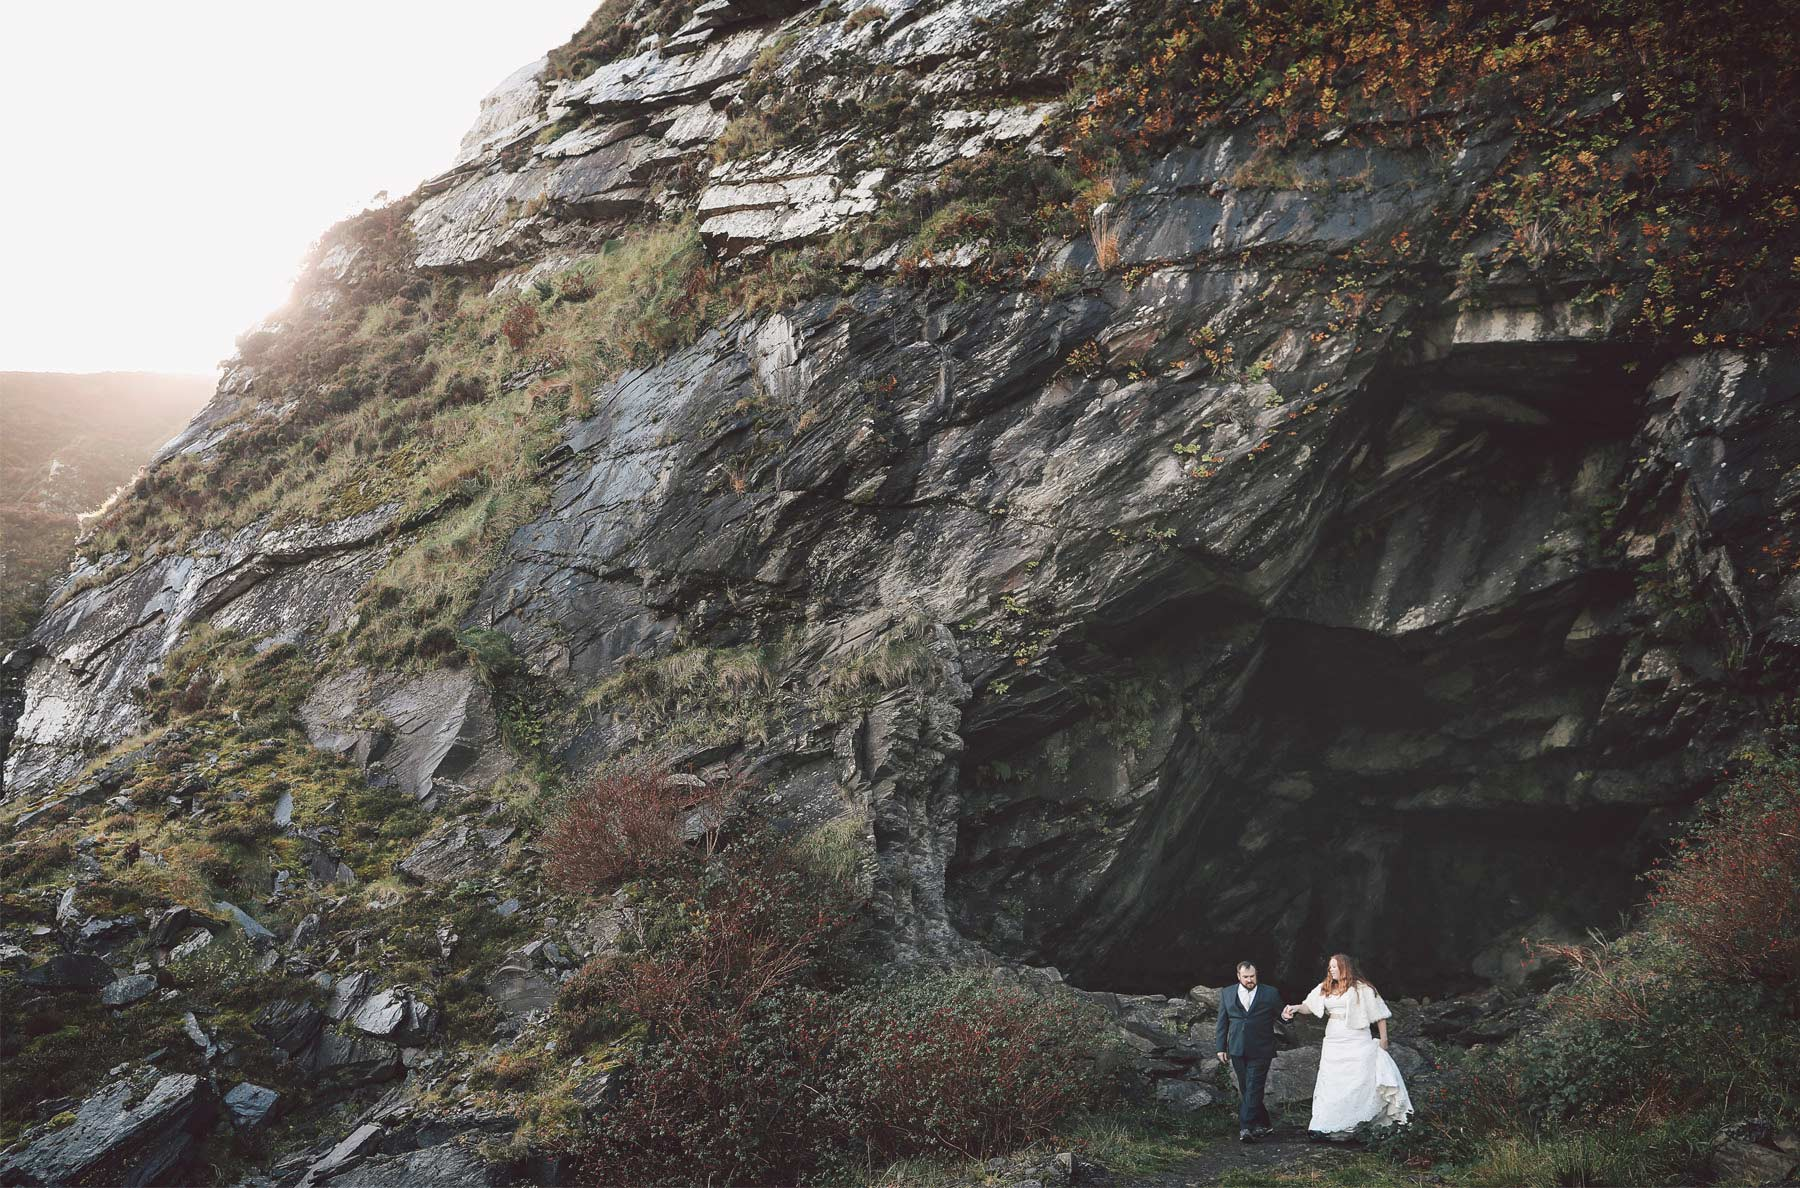 05-Kilarney-Ireland-Wedding-Photographer-by-Andrew-Vick-Photography-Fall-Autumn-Destination-Bride-Groom-Rocks-Cave-Holding-Hands-Vintage-Becca-and-Donal.jpg